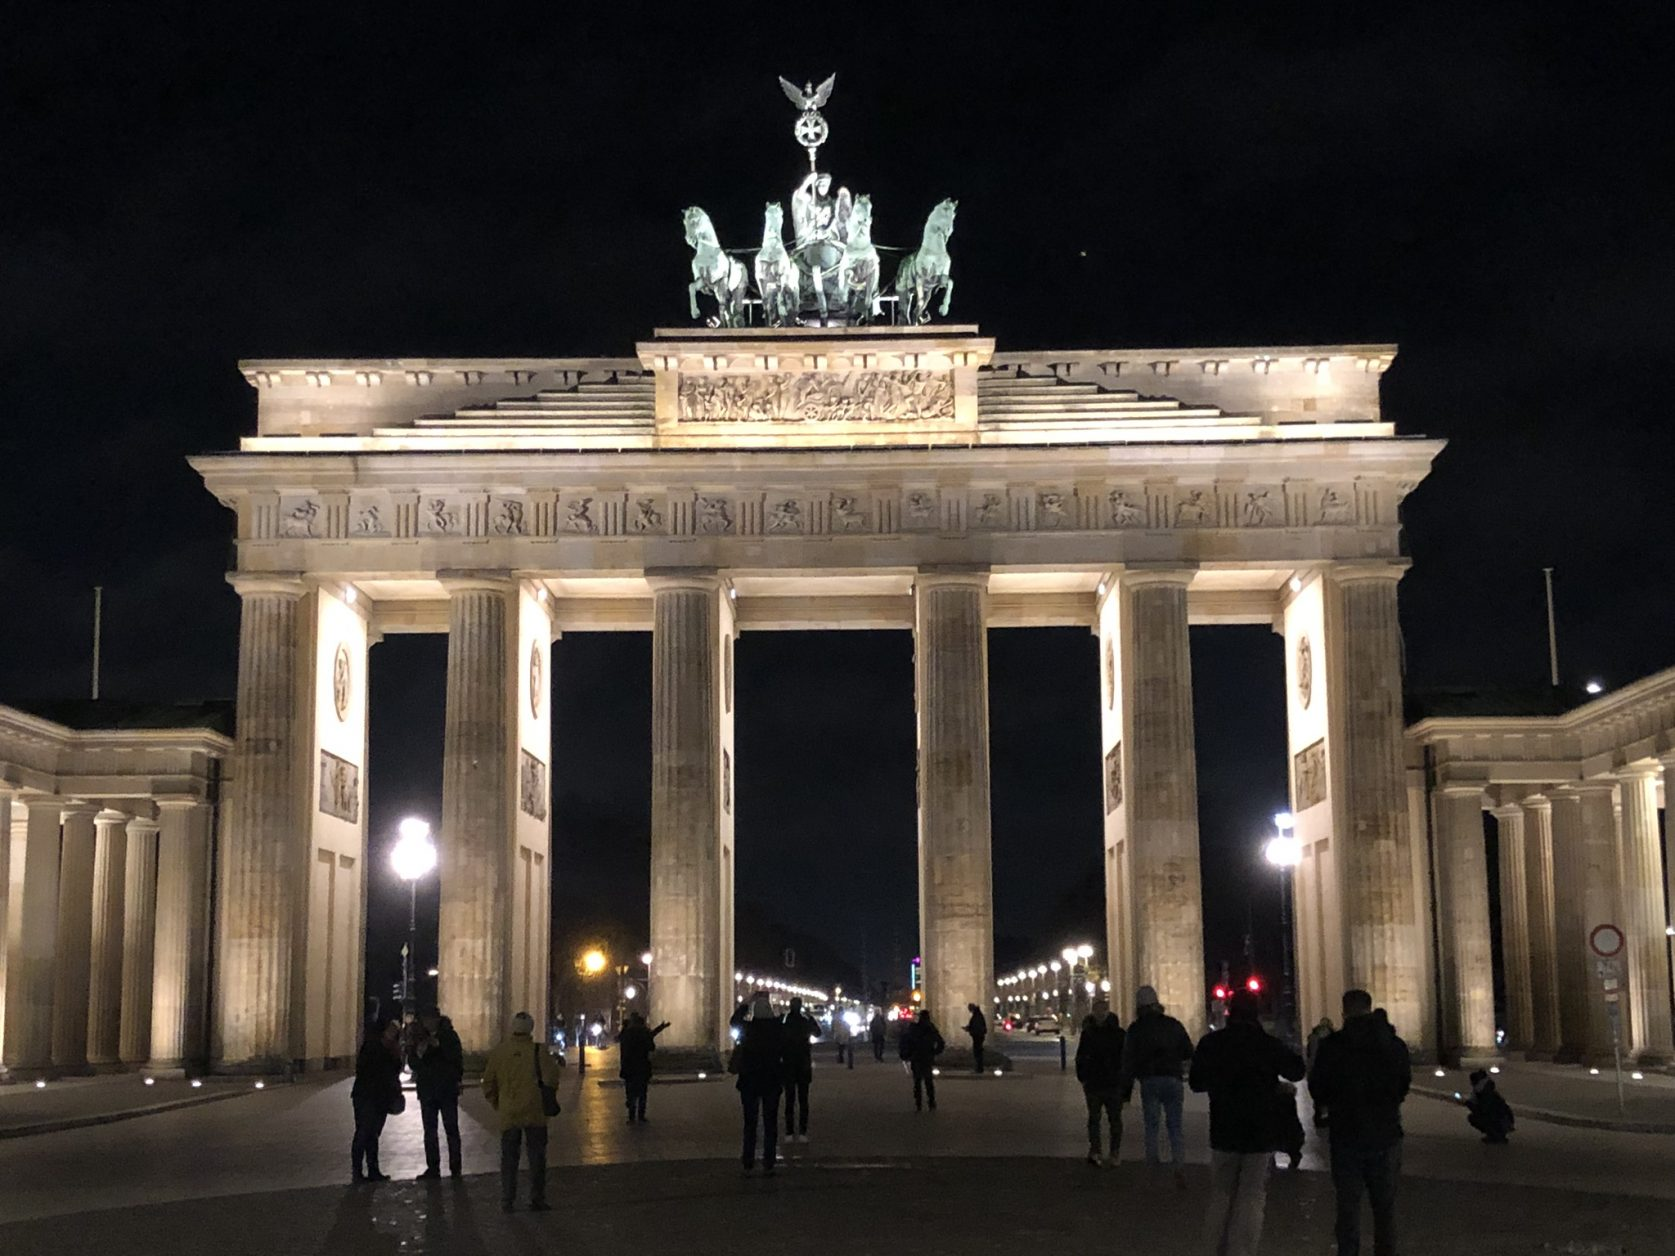 Berlin Brandenburger Tor (1)